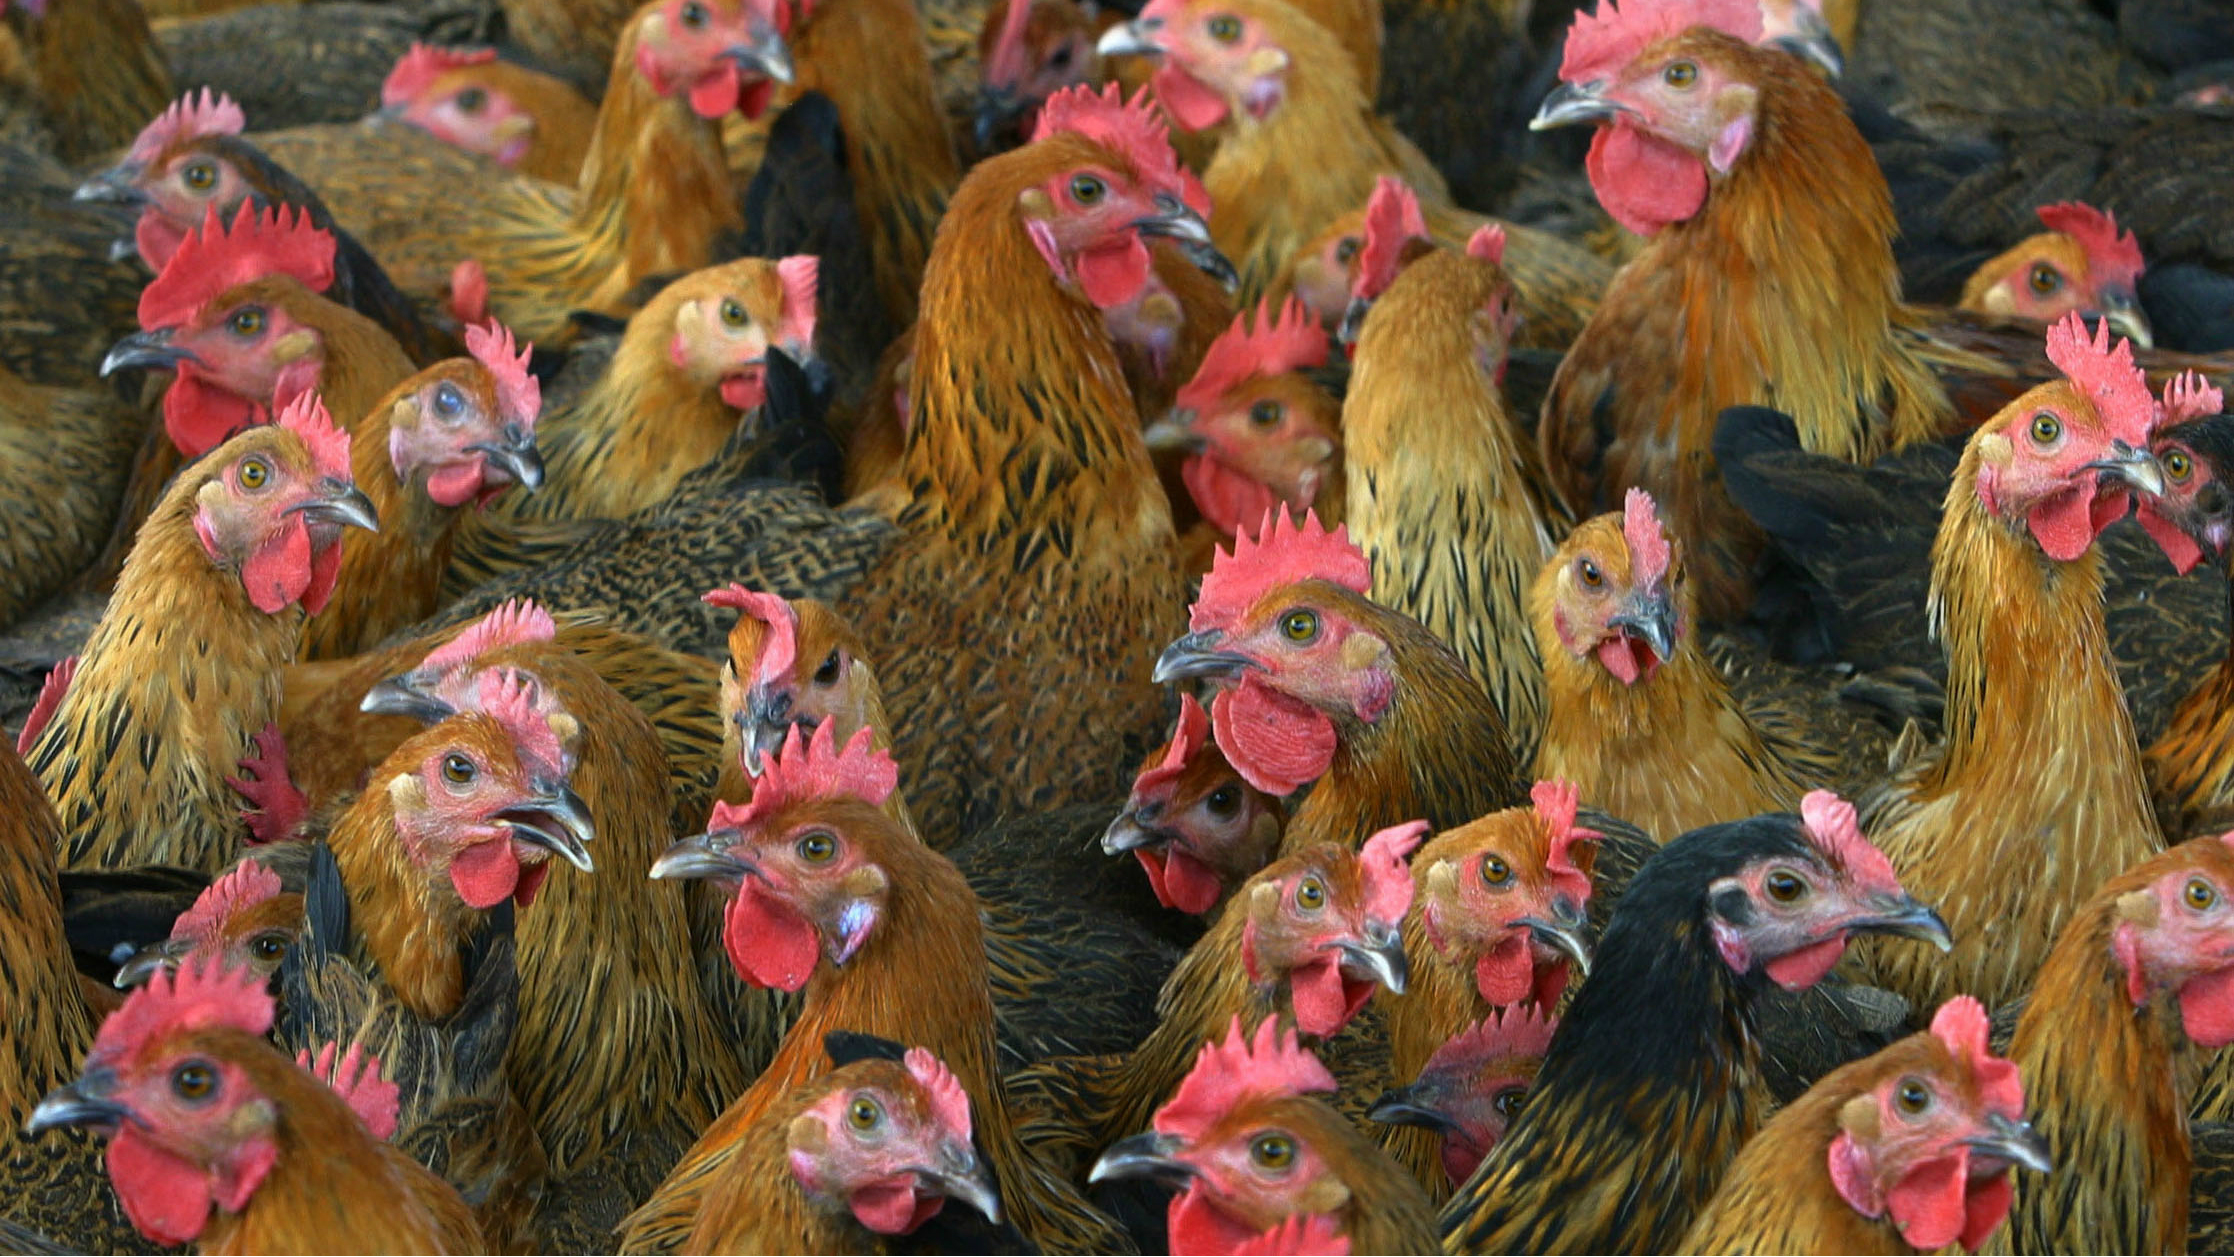 A bunch of chickens.